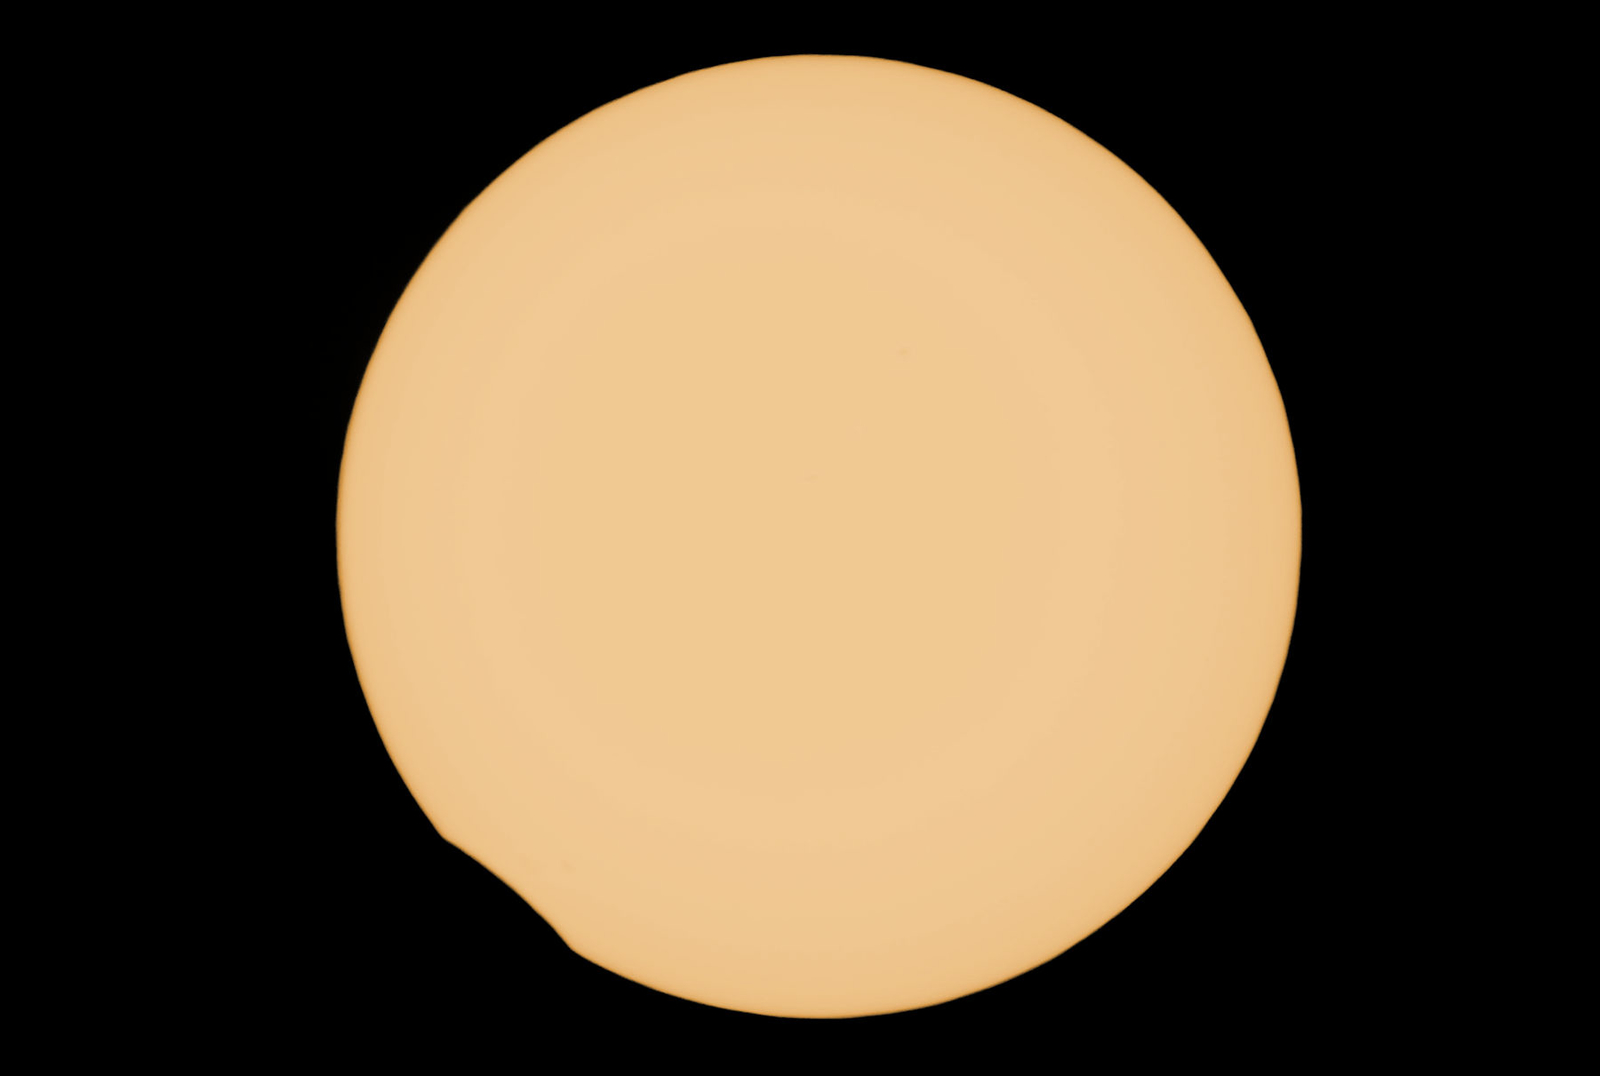 End of the 21 August 2017 Eclipse